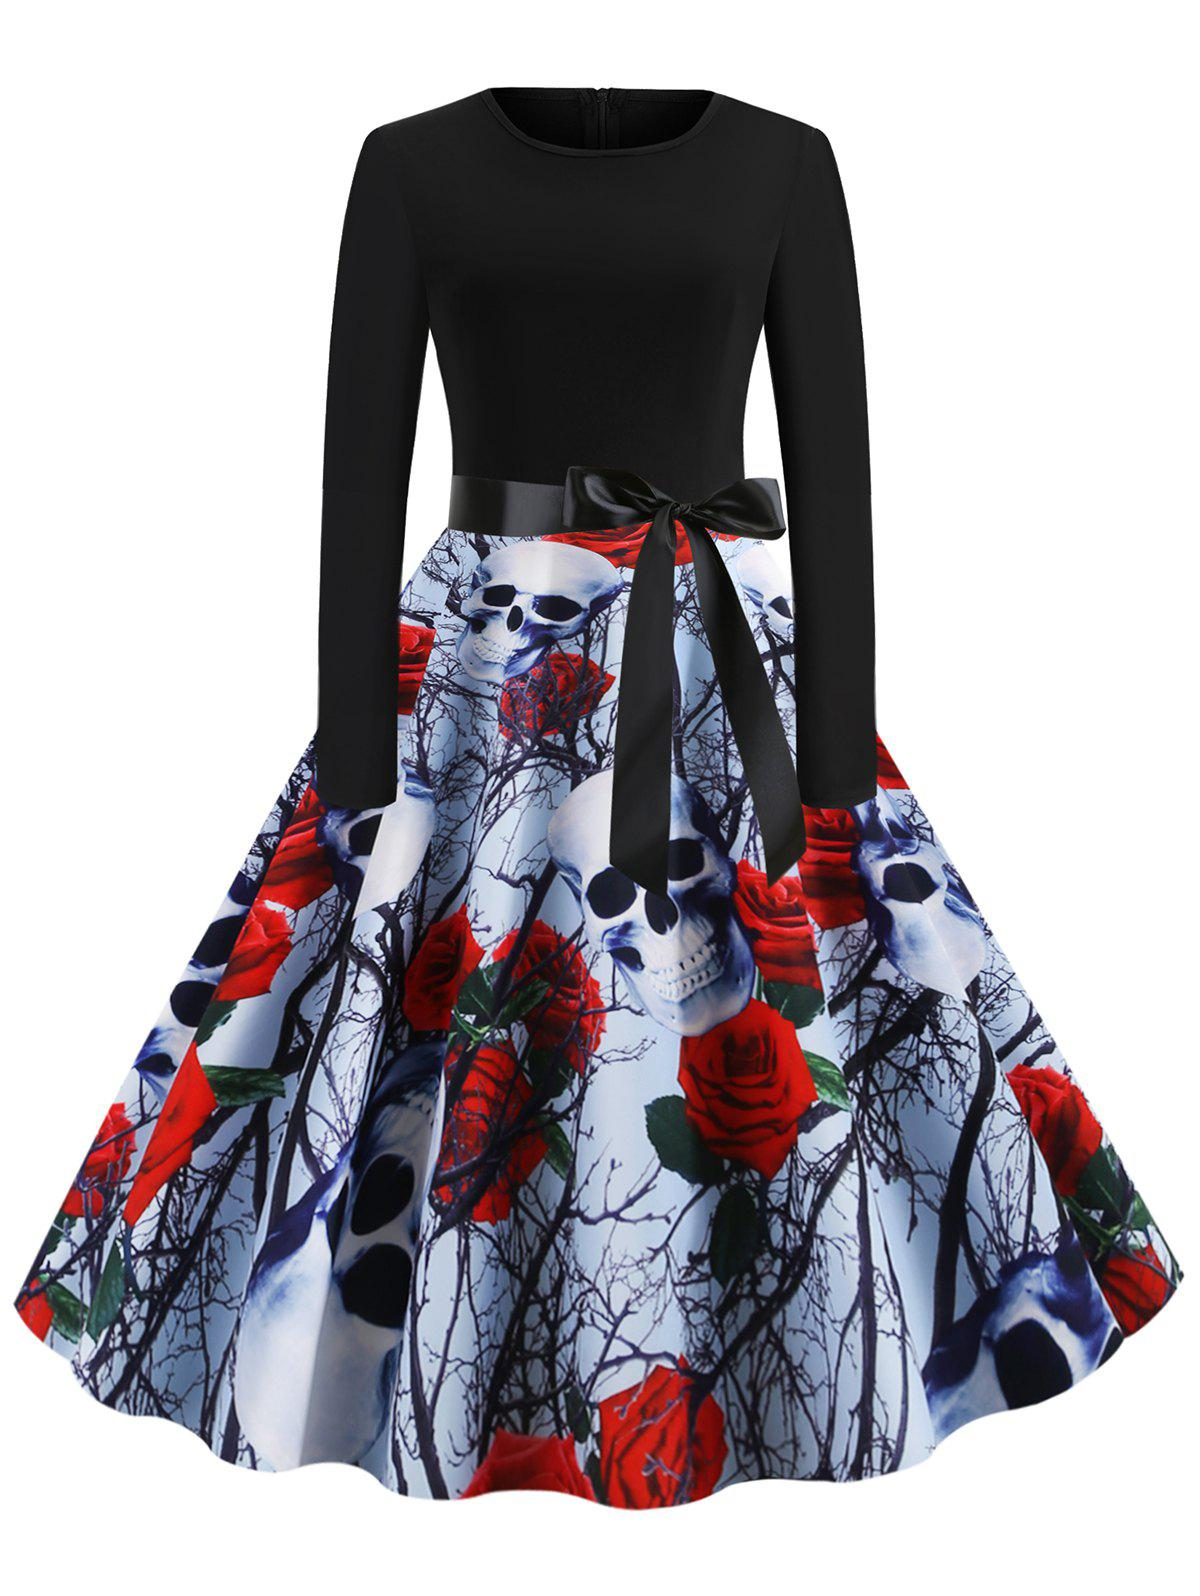 Trendy Halloween Skull Floral Print Party Flare Dress